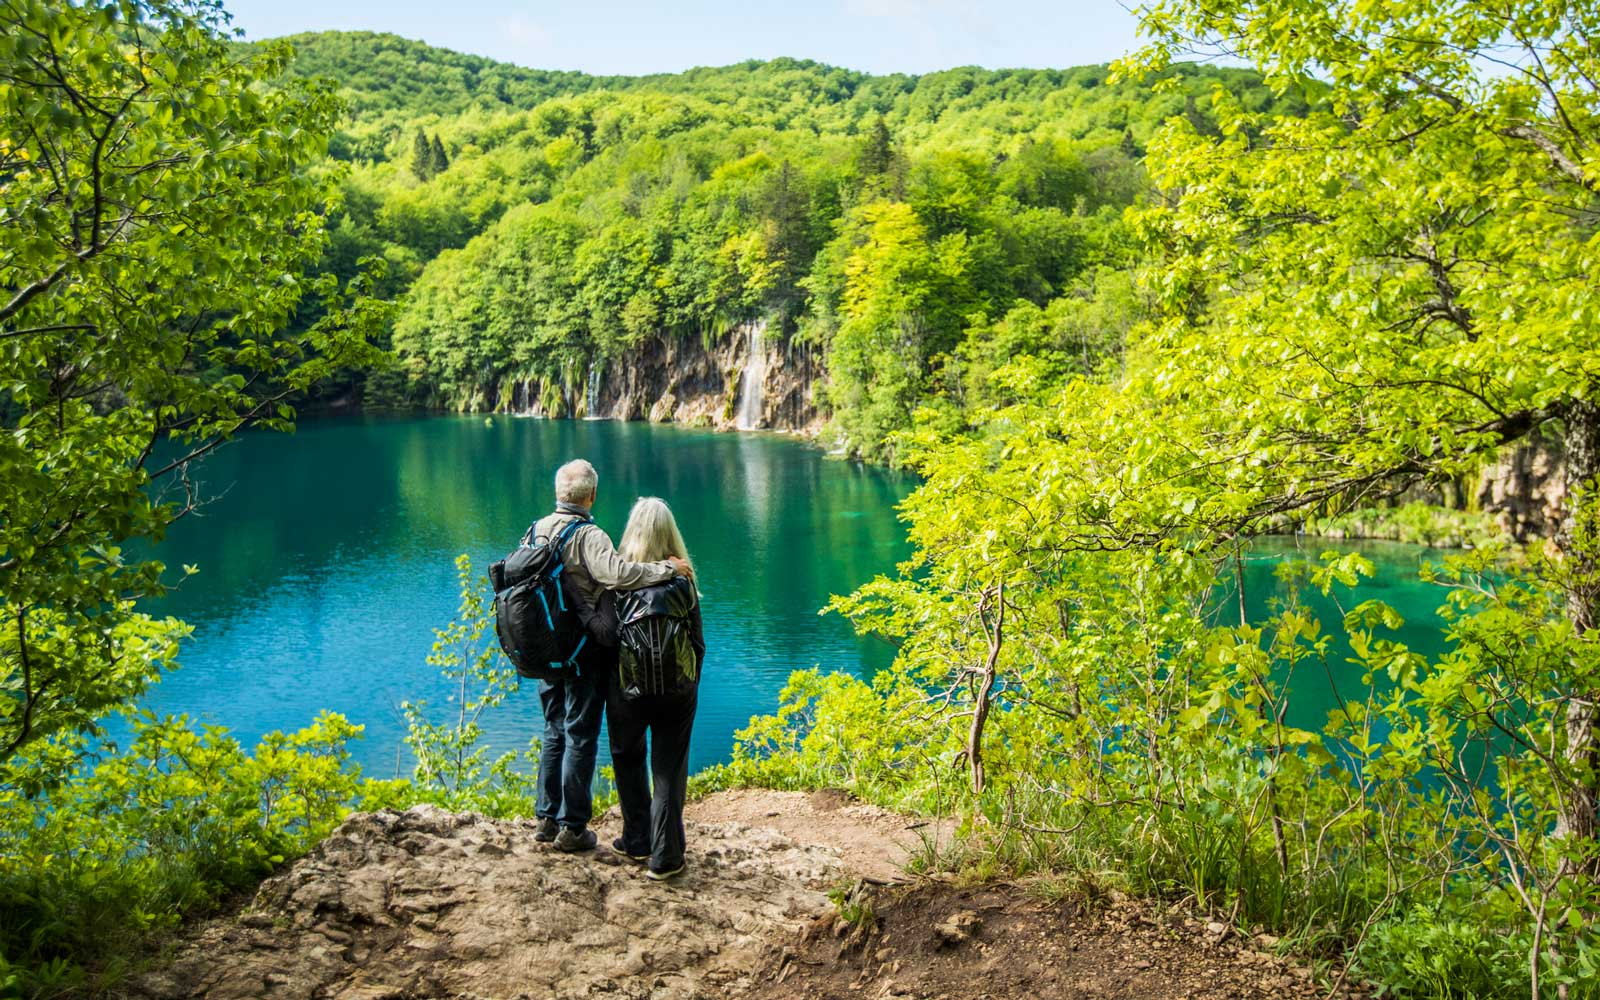 Retired couple traveling on a hike